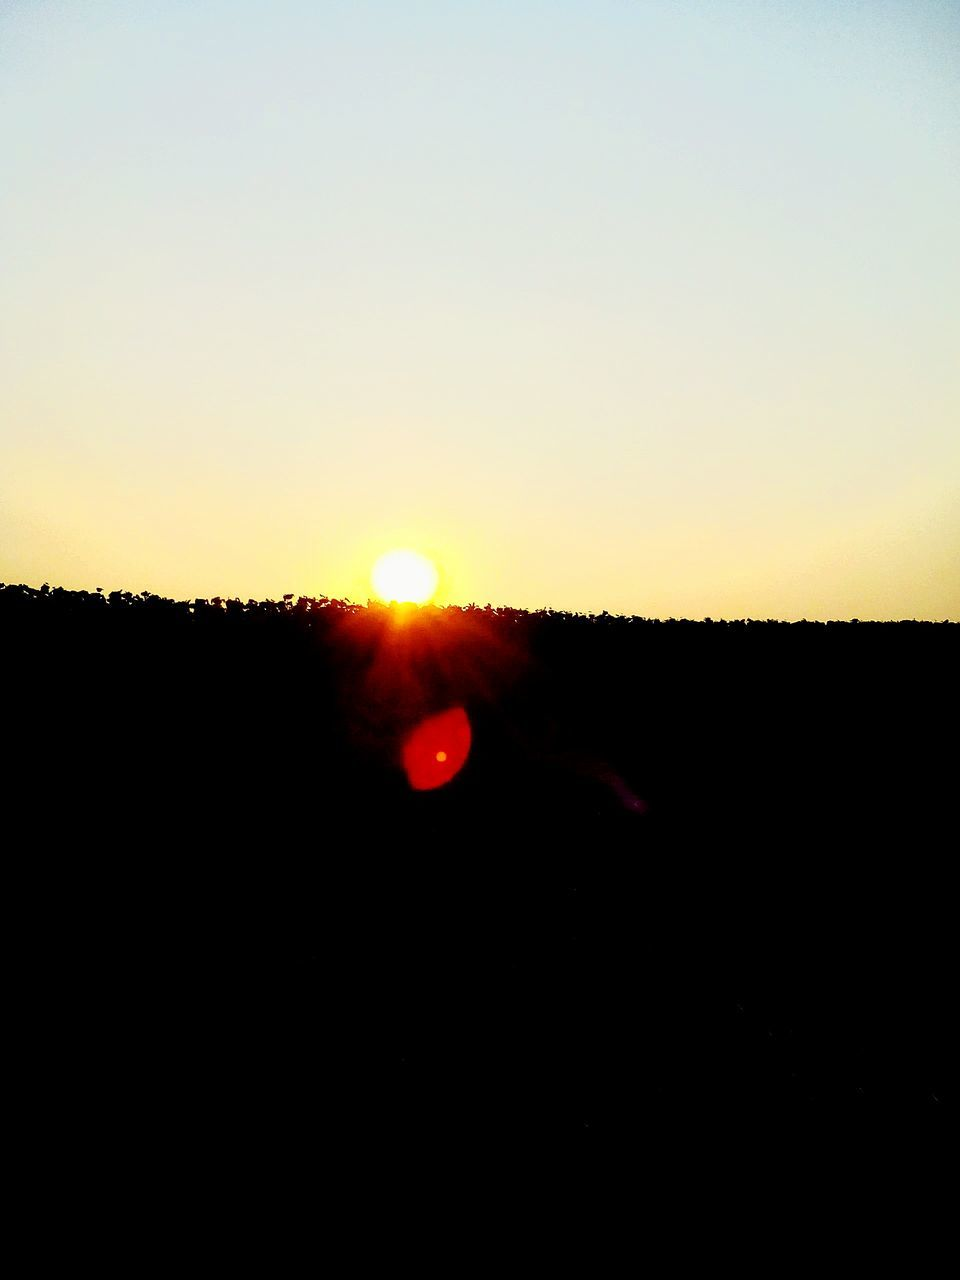 sun, sunset, nature, silhouette, scenics, beauty in nature, tranquil scene, tranquility, landscape, sky, sunlight, clear sky, outdoors, moon, no people, solar eclipse, astronomy, day